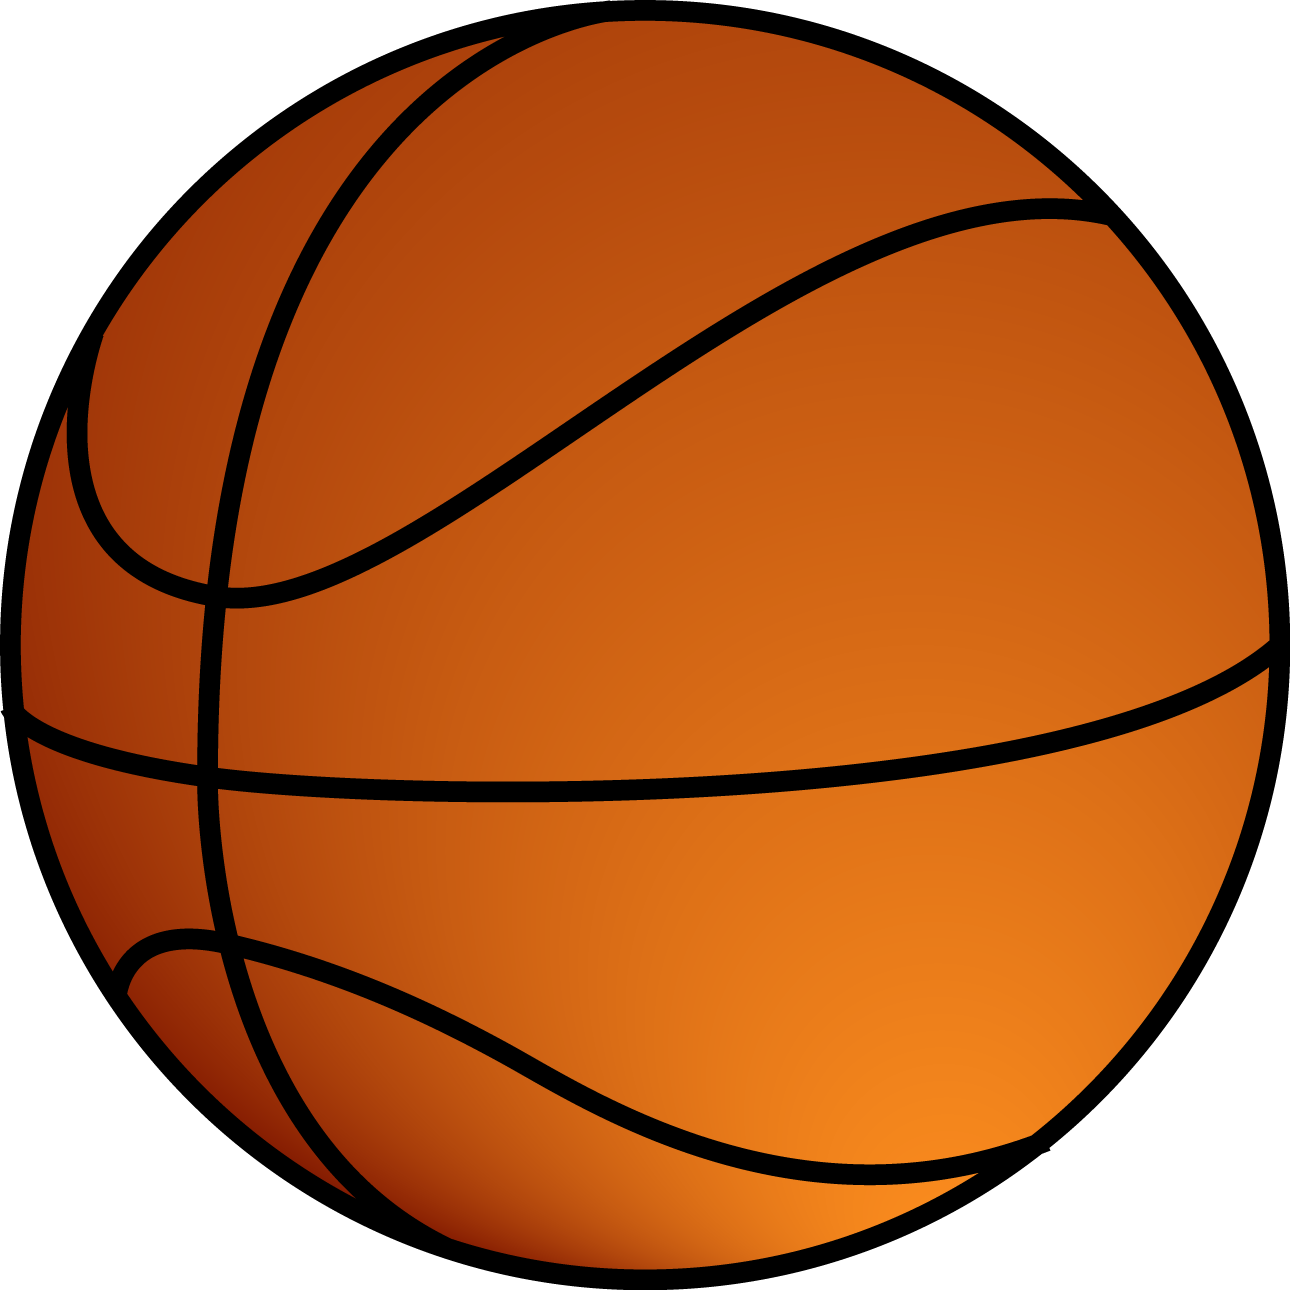 Download for free Basketball Transparent PNG File